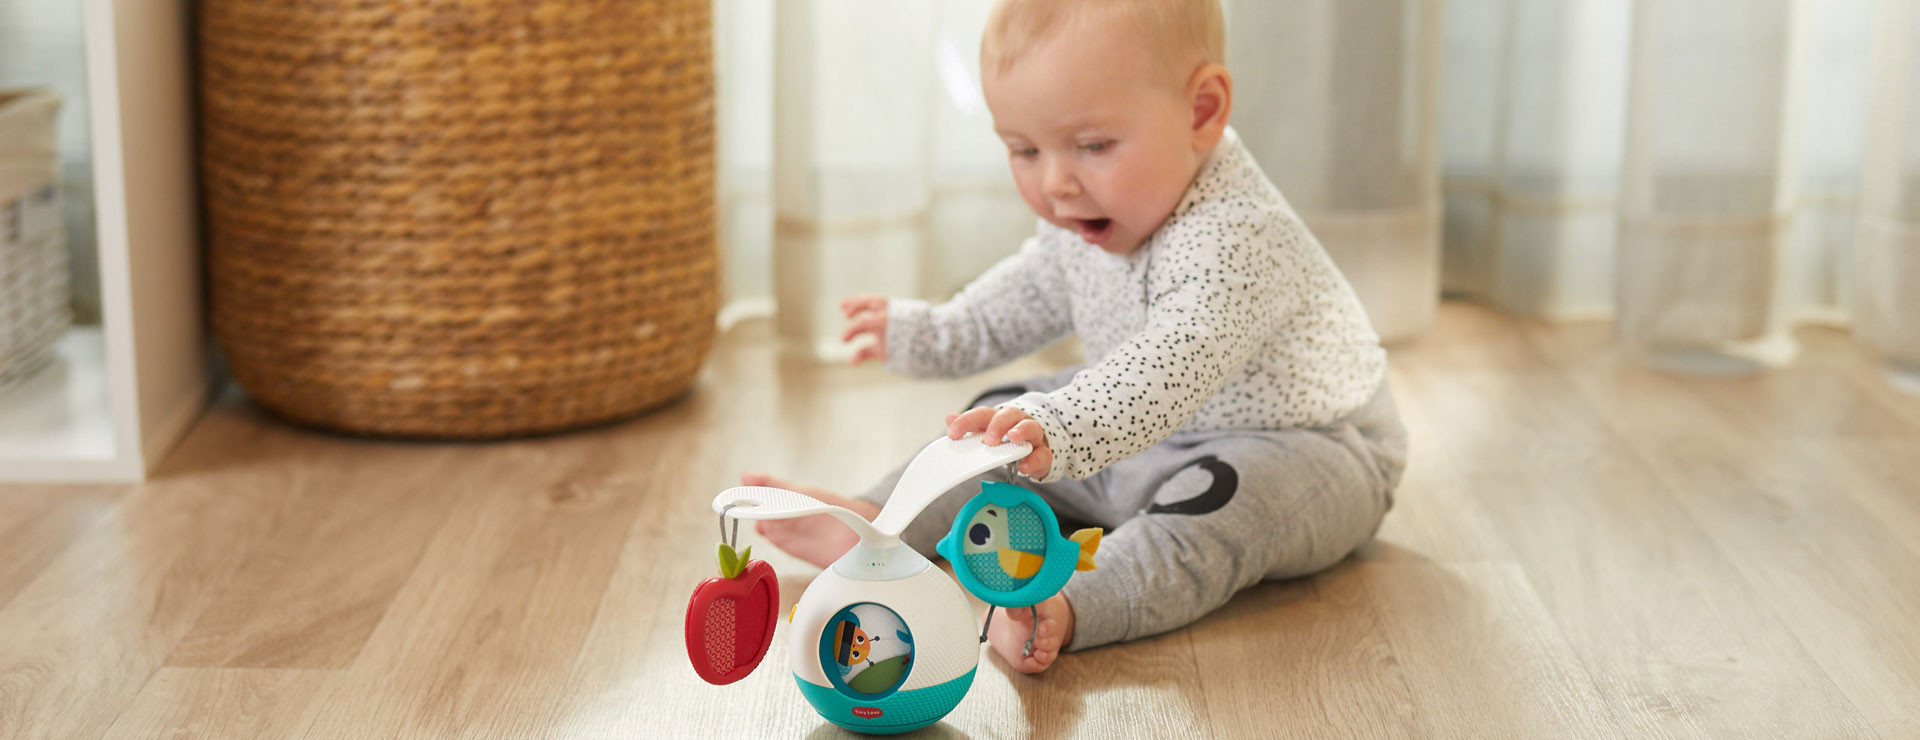 Promotes baby's gross motor skills, senses, cognition and more